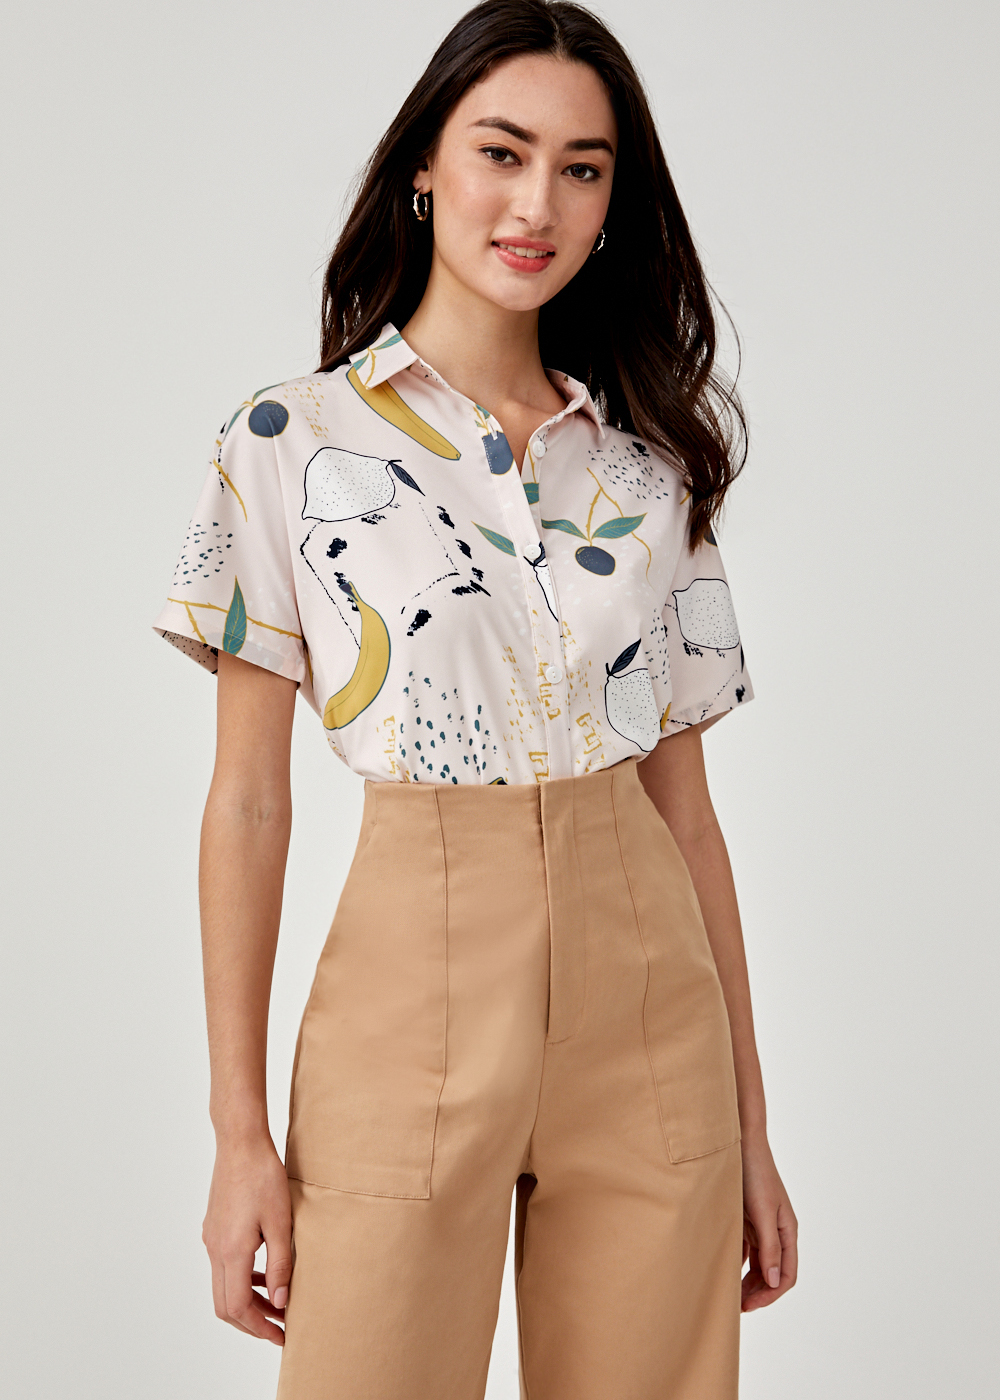 Mireyan Button Down Shirt in Tutti Frutti